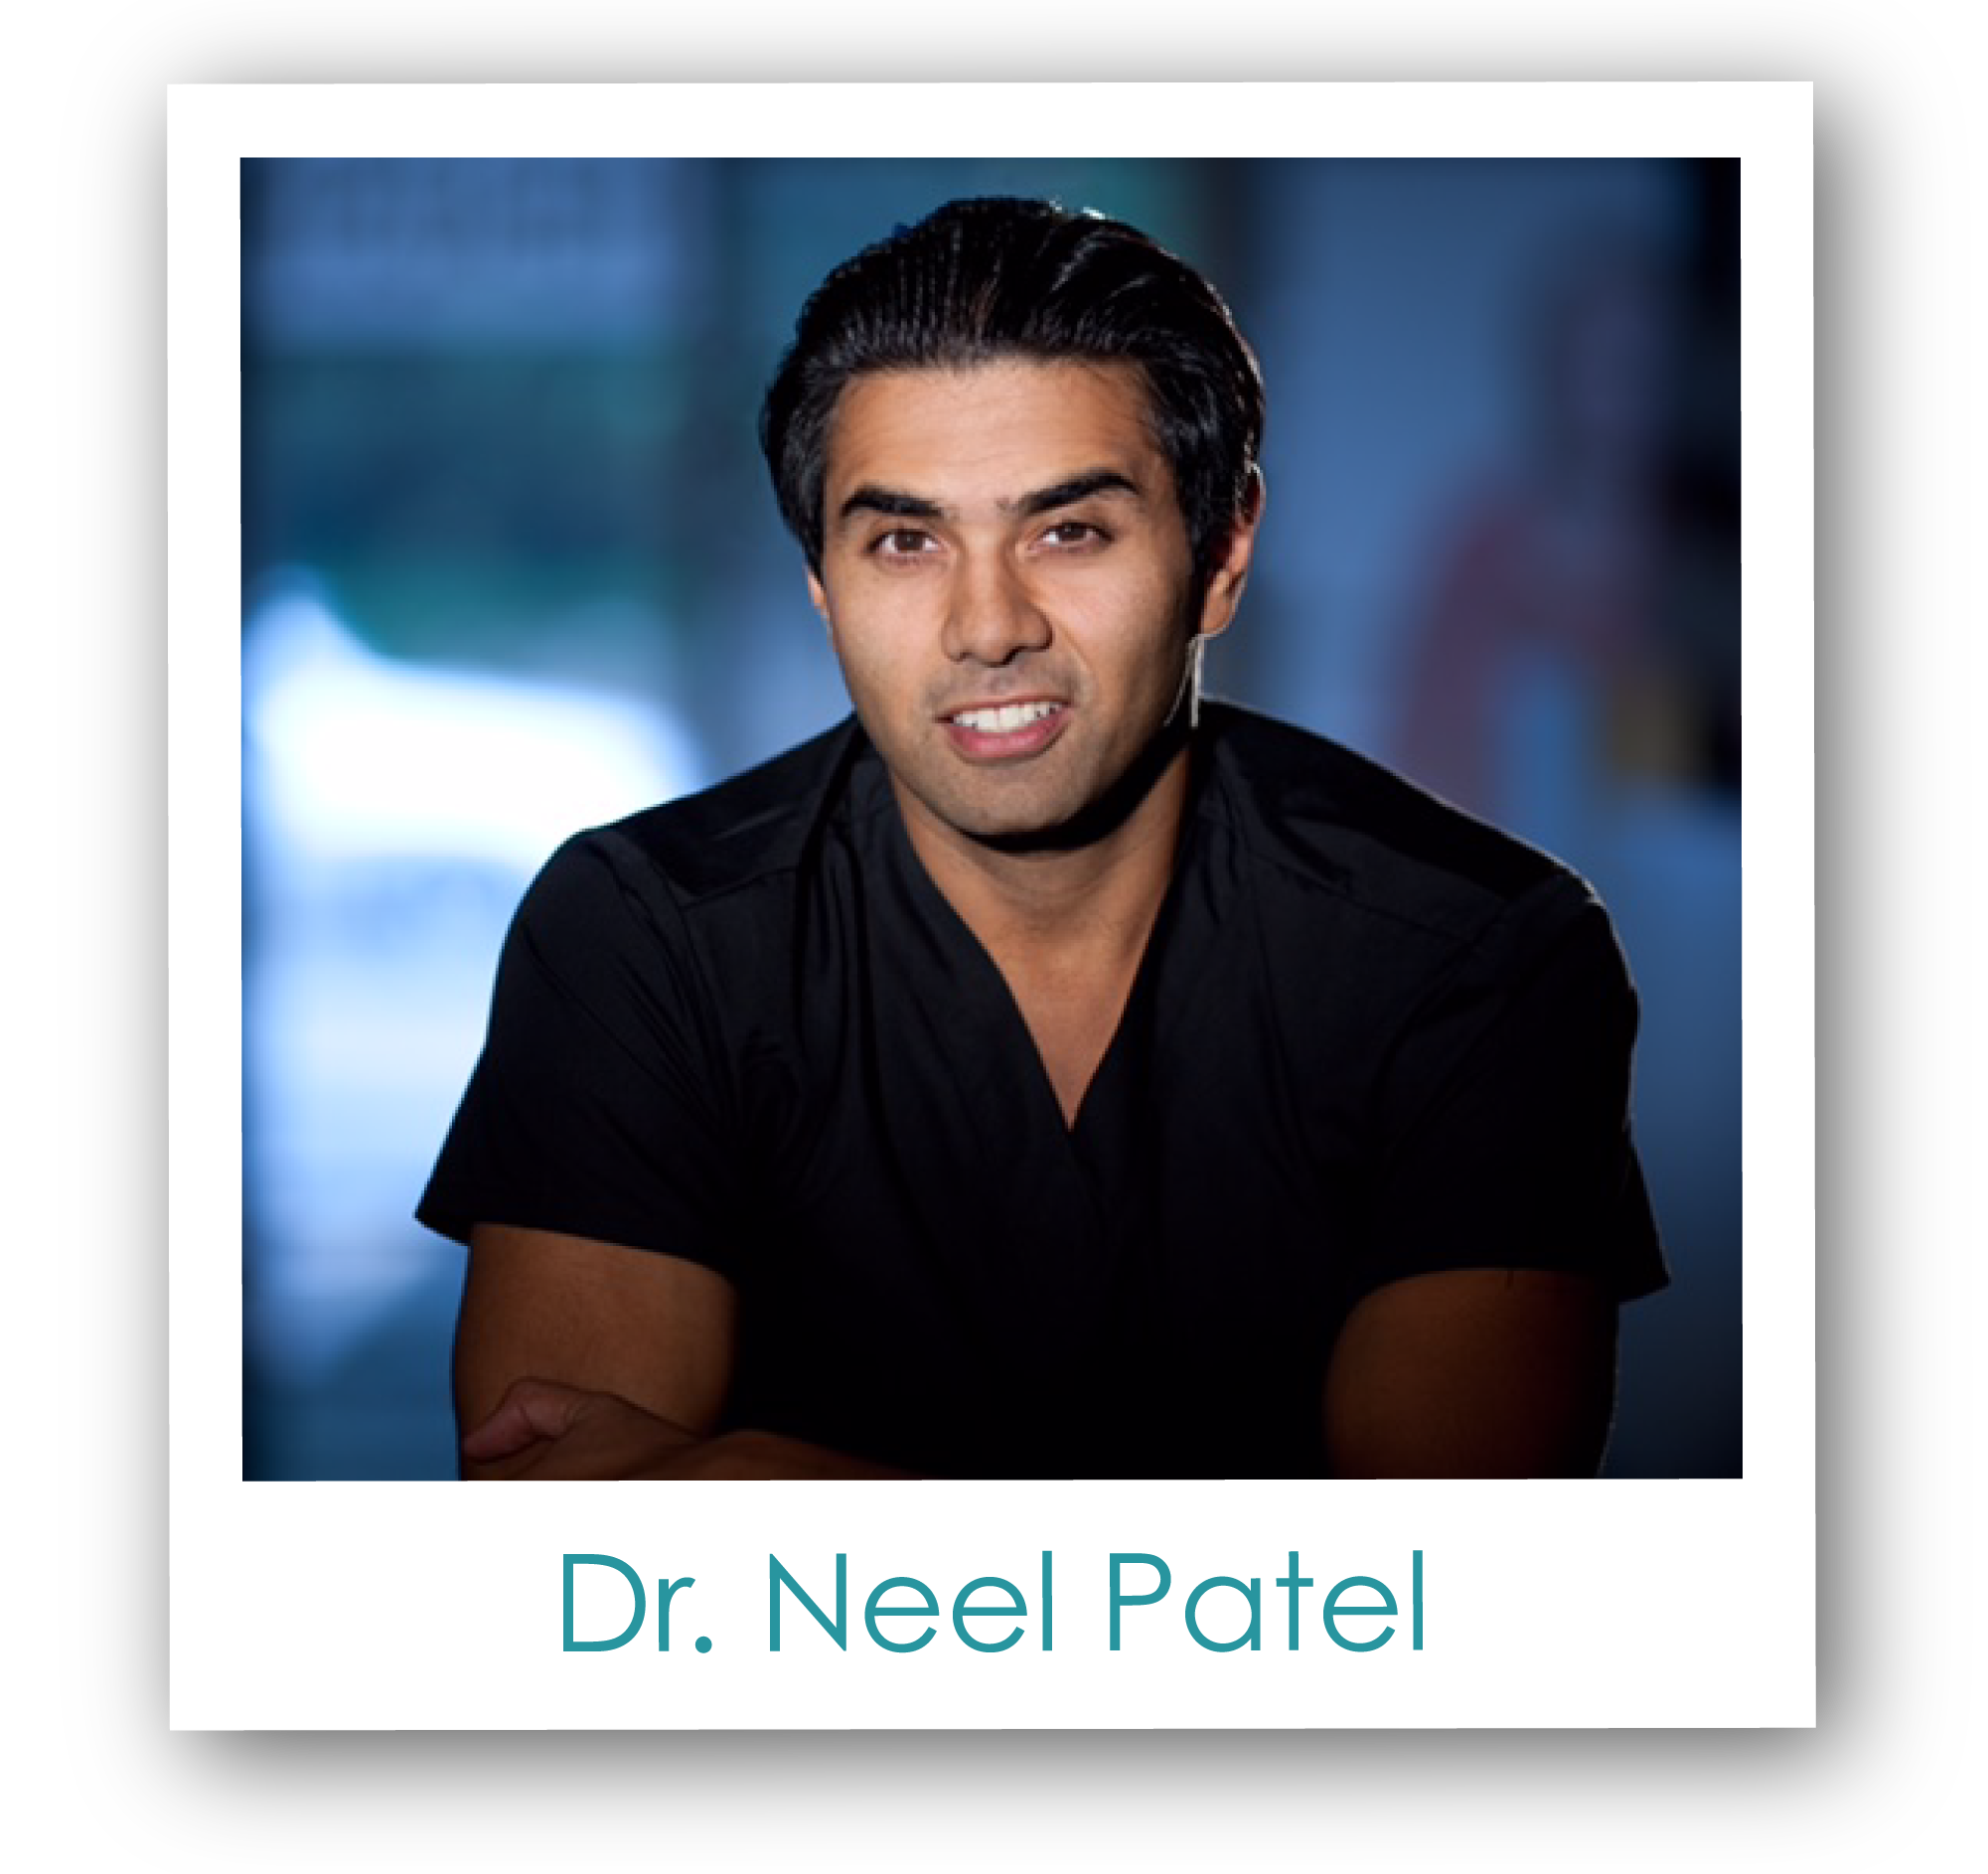 About Dr. Neel Patel - Dr. Neel Patel, MD is a board-certified vascular and interventional radiologist specializing in the nonsurgical treatment of uterine fibroid by Uterine Fibroid Embolization (UFE) procedure. He is the founder and medical director of Minimally Invasive Center of Atlanta located in Duluth and Decatur, Georgia.Dr. Patel received his undergraduate degree from Georgia Tech and obtained his medical degree from the Medical College of Georgia. He completed his residency in Radiology at Beth Israel Medical Center in Newark, New Jersey and then went on to complete his fellowship training in Vascular and Interventional Radiology at Thomas Jefferson University Hospital in Philadelphia, Pennsylvania.After completing his fellowship, Dr. Patel worked at Emory St. Joseph's Hospital and Cancer Treatment Centers of America. He's currently certified by the American Board of Radiology and also holds a certificate in Interventional Radiology.His practice, Minimally Invasive Center of Atlanta, is recognized as one of the leading centers for the UFE procedure for treatment of uterine fibroids. Dr. Patel has extensive experience in performing this non-invasive procedure and prides himself on educating women about uterine fibroids and ease their symptoms. He ensures that every patient gets individualized attention during her treatment and has a truly positive experience during her visit to the office.